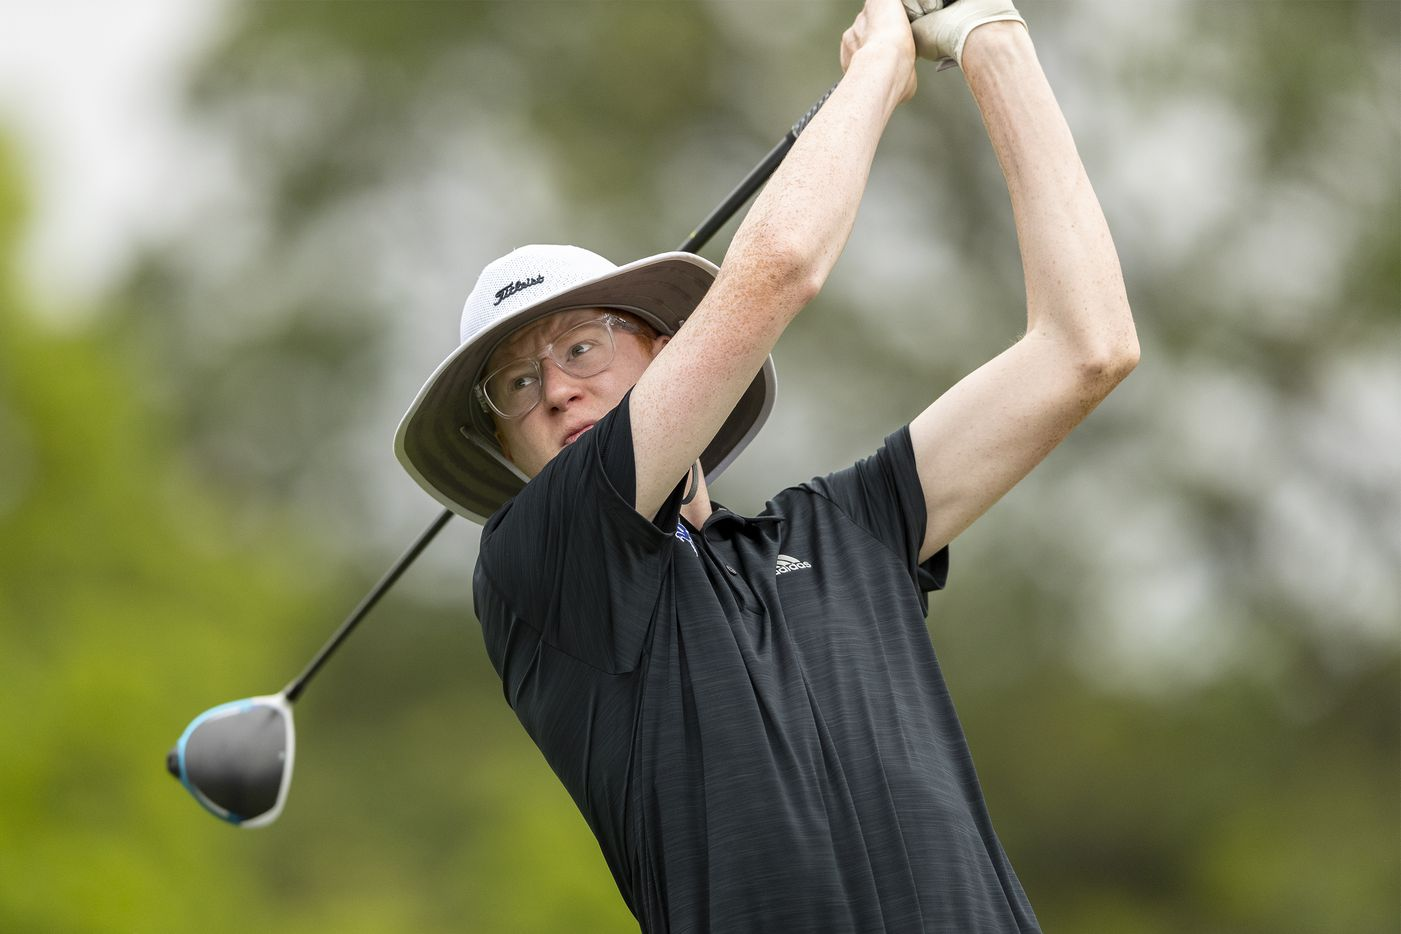 Plano WestÕs Jarrett Grinnell hits from the 5th tee box during the final round of the UIL Class 6A boys golf tournament in Georgetown, Tuesday, May 18, 2021. (Stephen Spillman/Special Contributor)